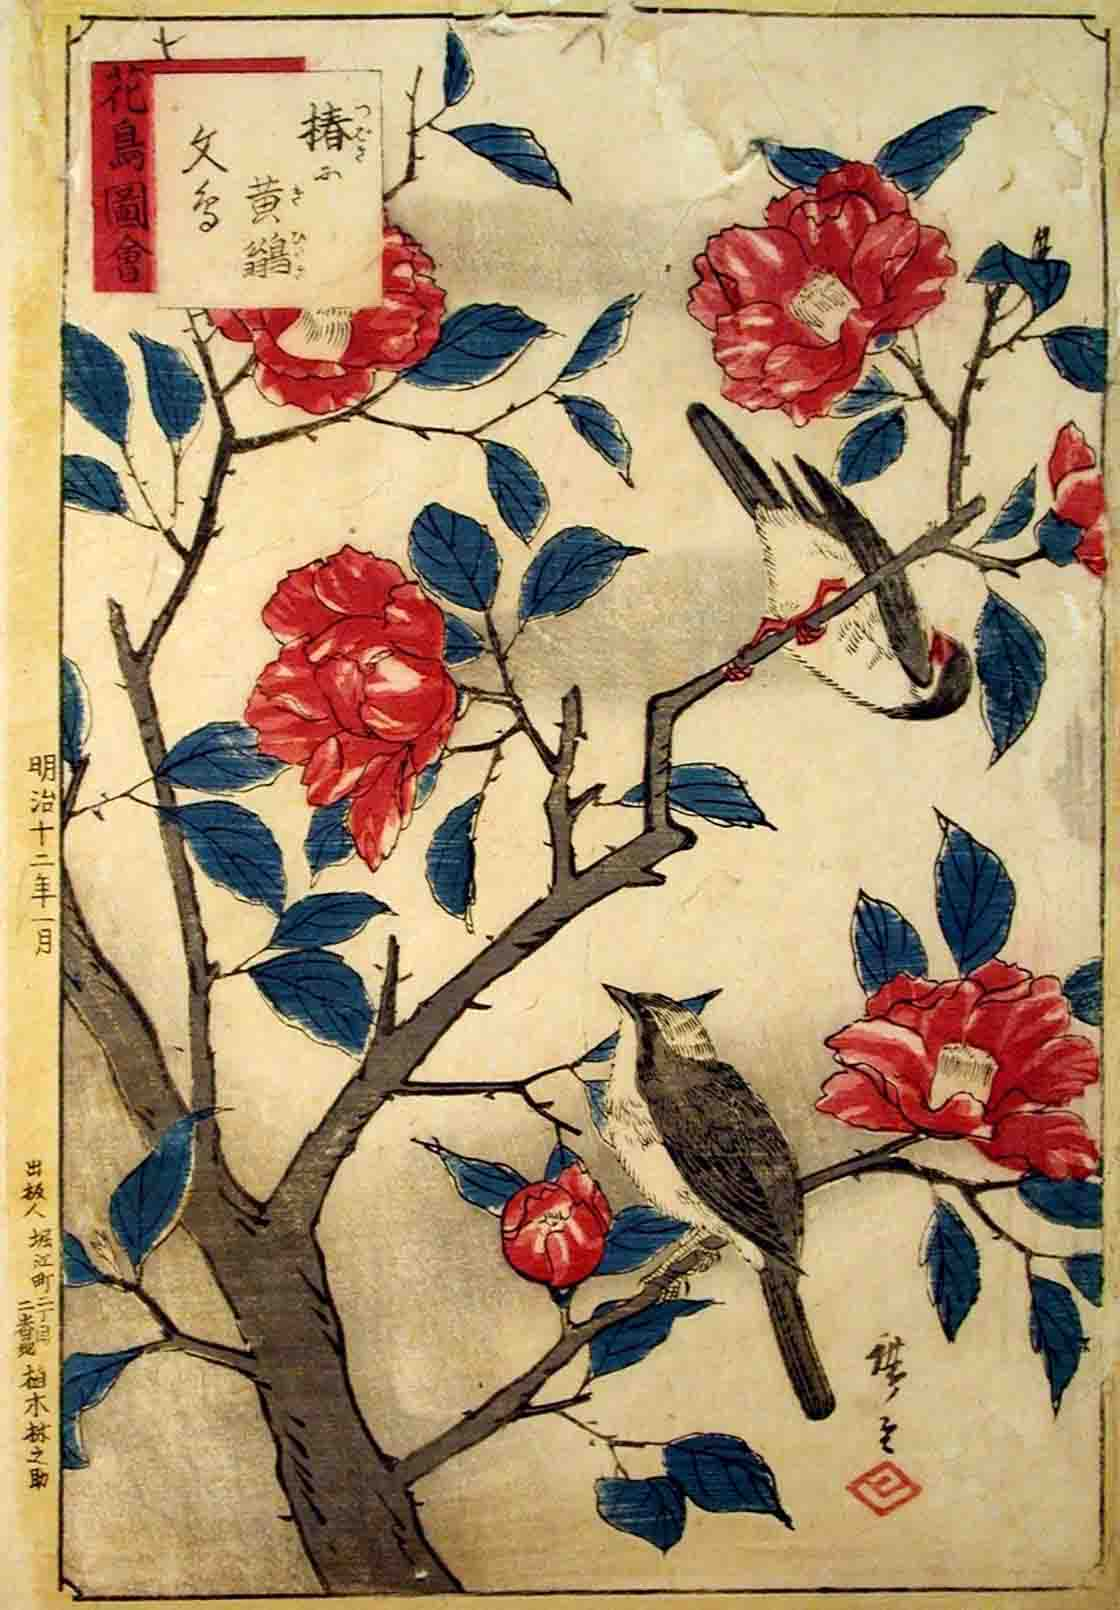 iroshige, Camellia and Yellow Birds, not dated, coloured woodblock print, 34.1 x 23.7 cm. Collection of Latrobe Regional Gallery, Bequest of Allan Aldous.